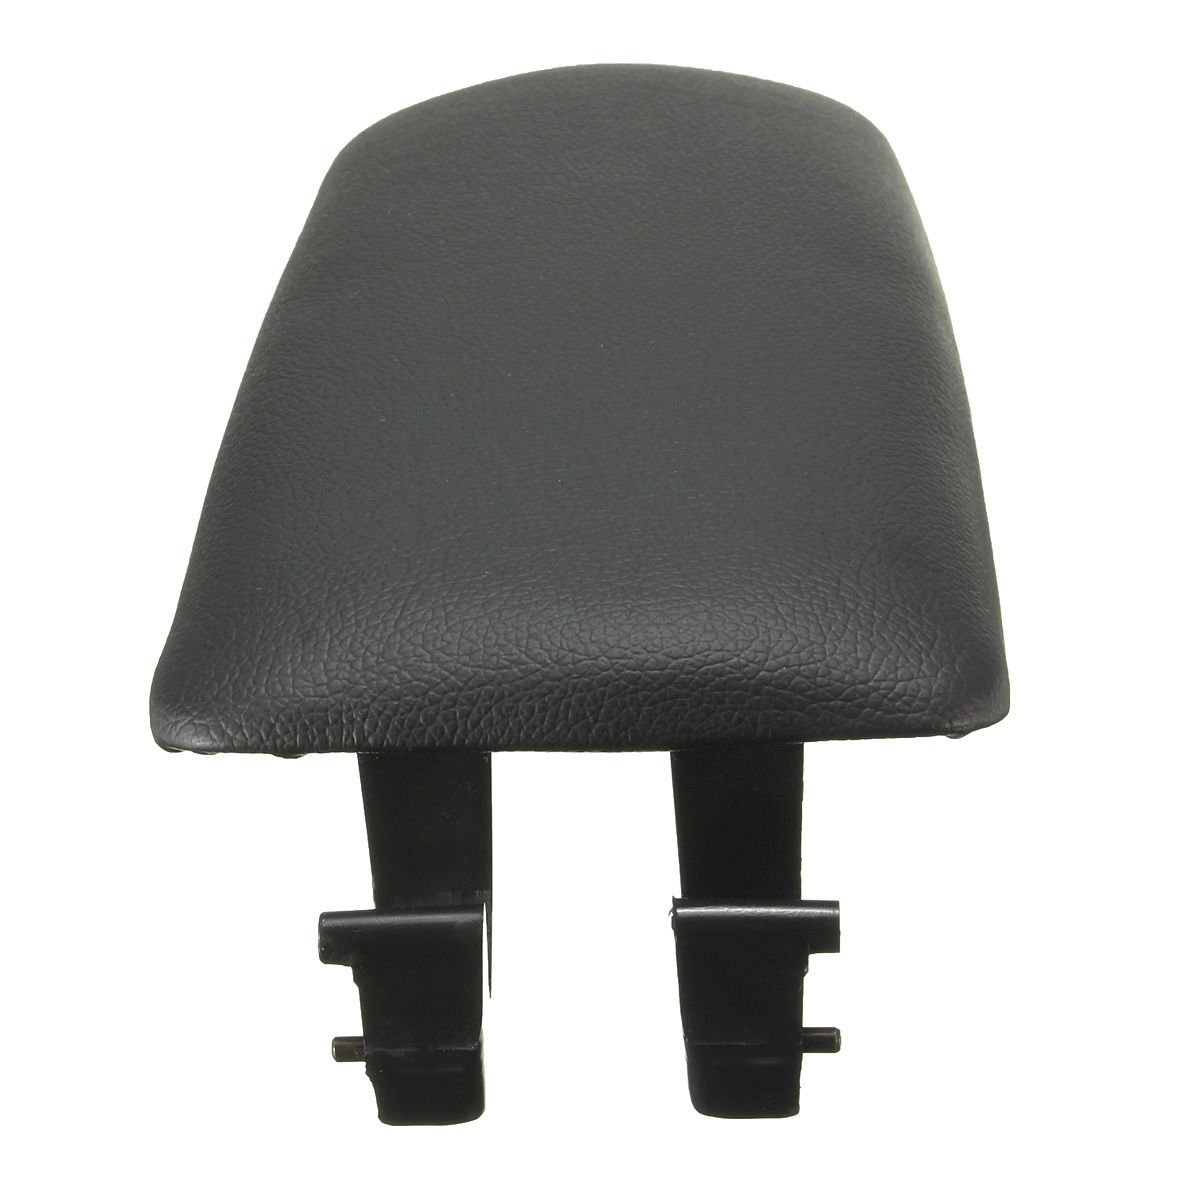 Arm Rest Center Console Lid Cover For Audi A4 B7 A4L 02-07 Leather